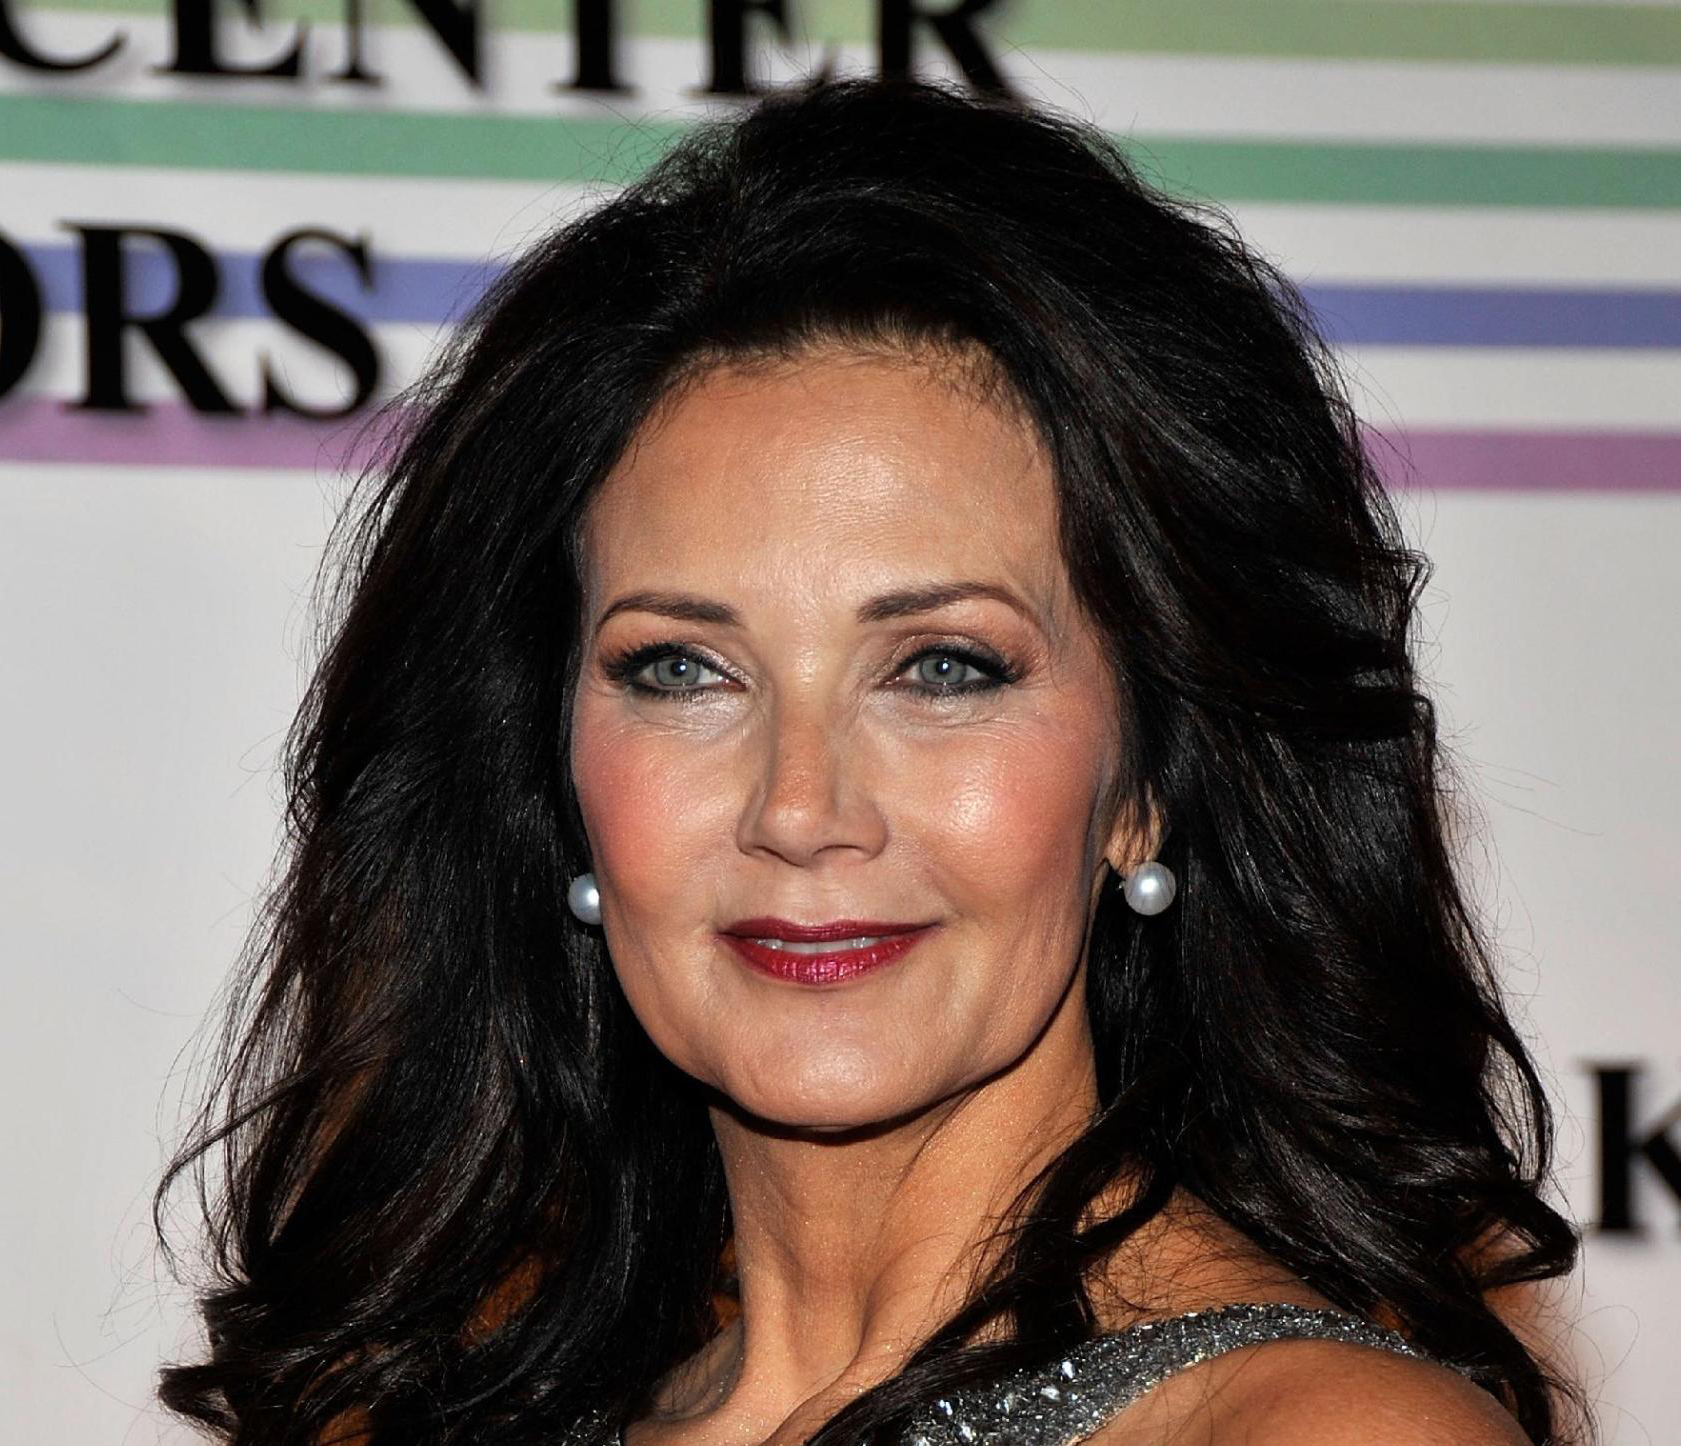 Lynda Carter Facelift Plastic Surgery Before and After | Celebie